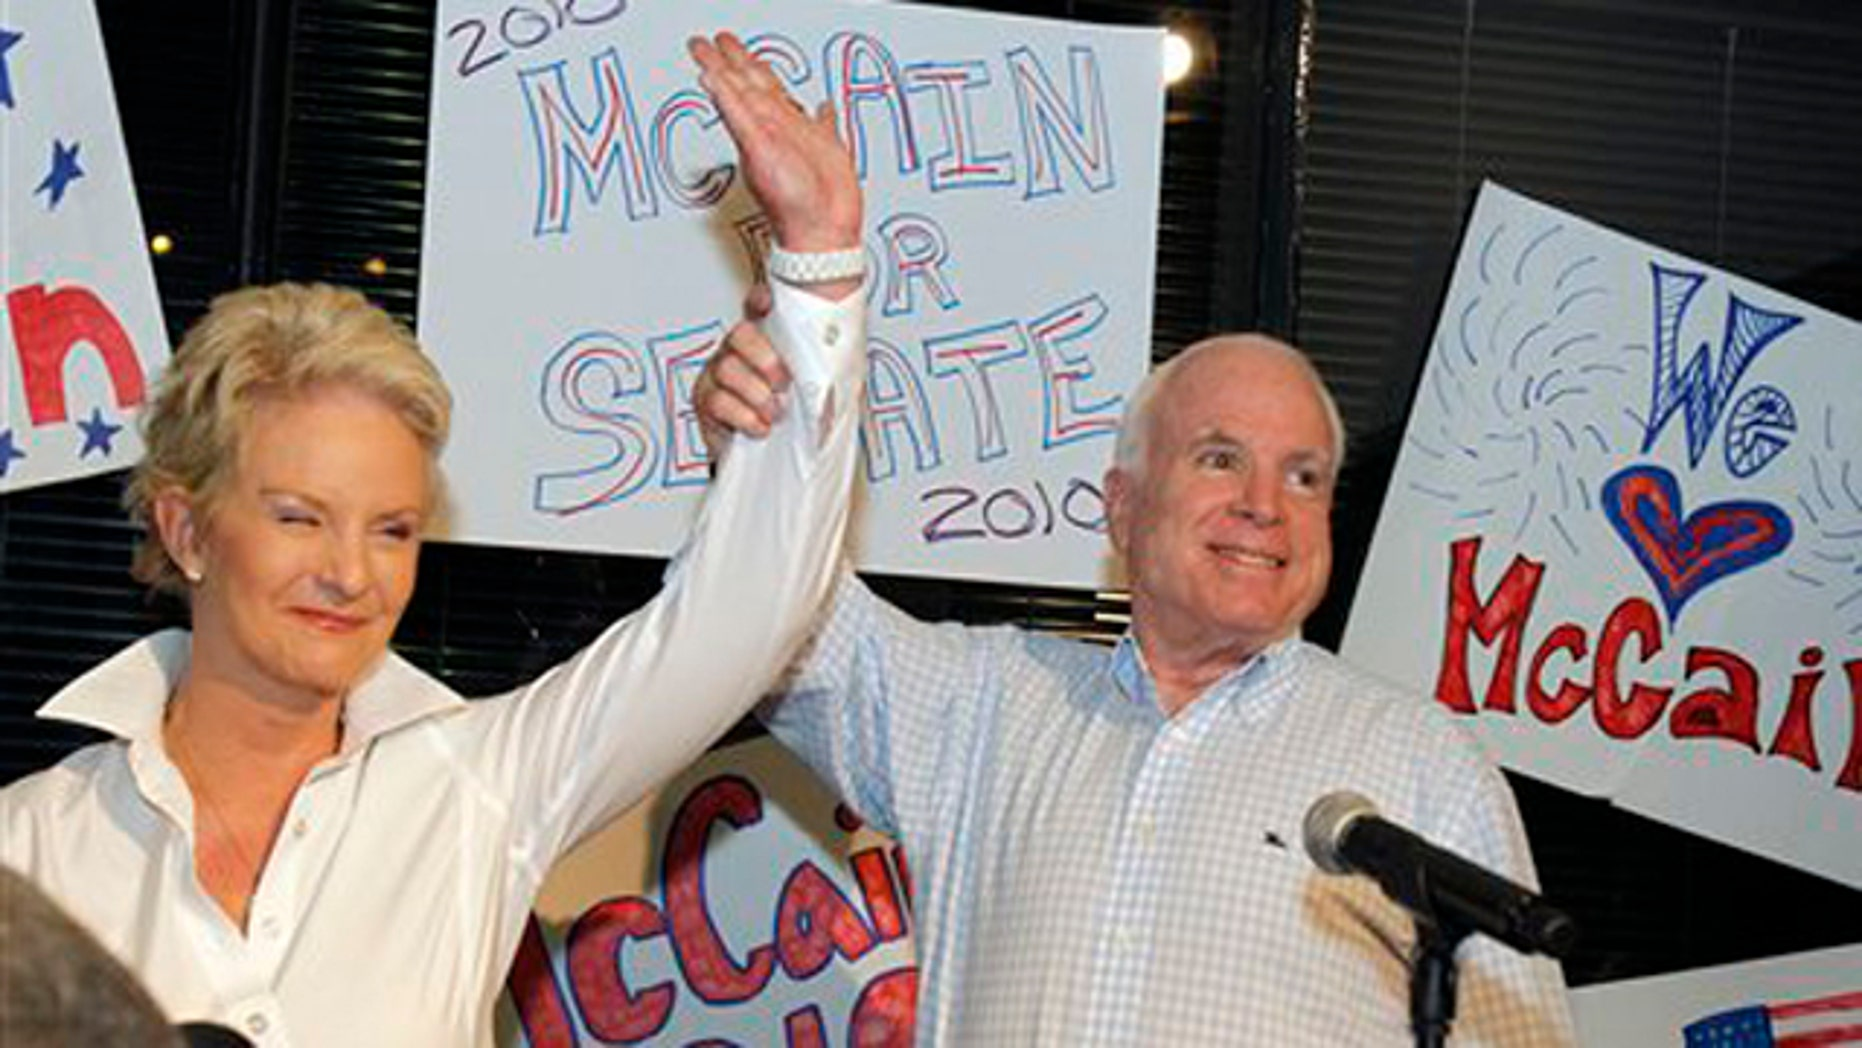 Aug. 23: Sen. John McCain with his wife Cindy McCain gets applause from supporters in Phoenix. (AP Photo)